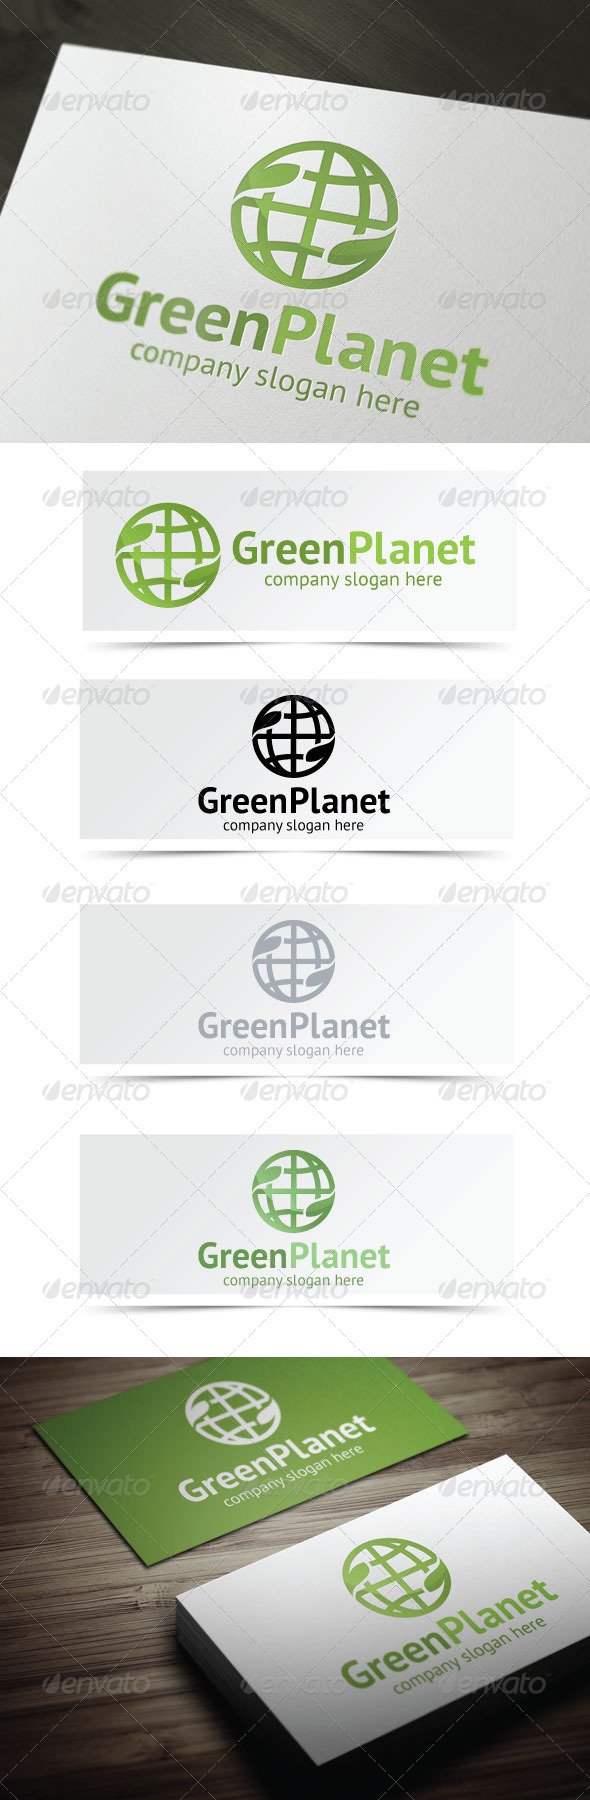 GraphicRiver Green Planet 4570451